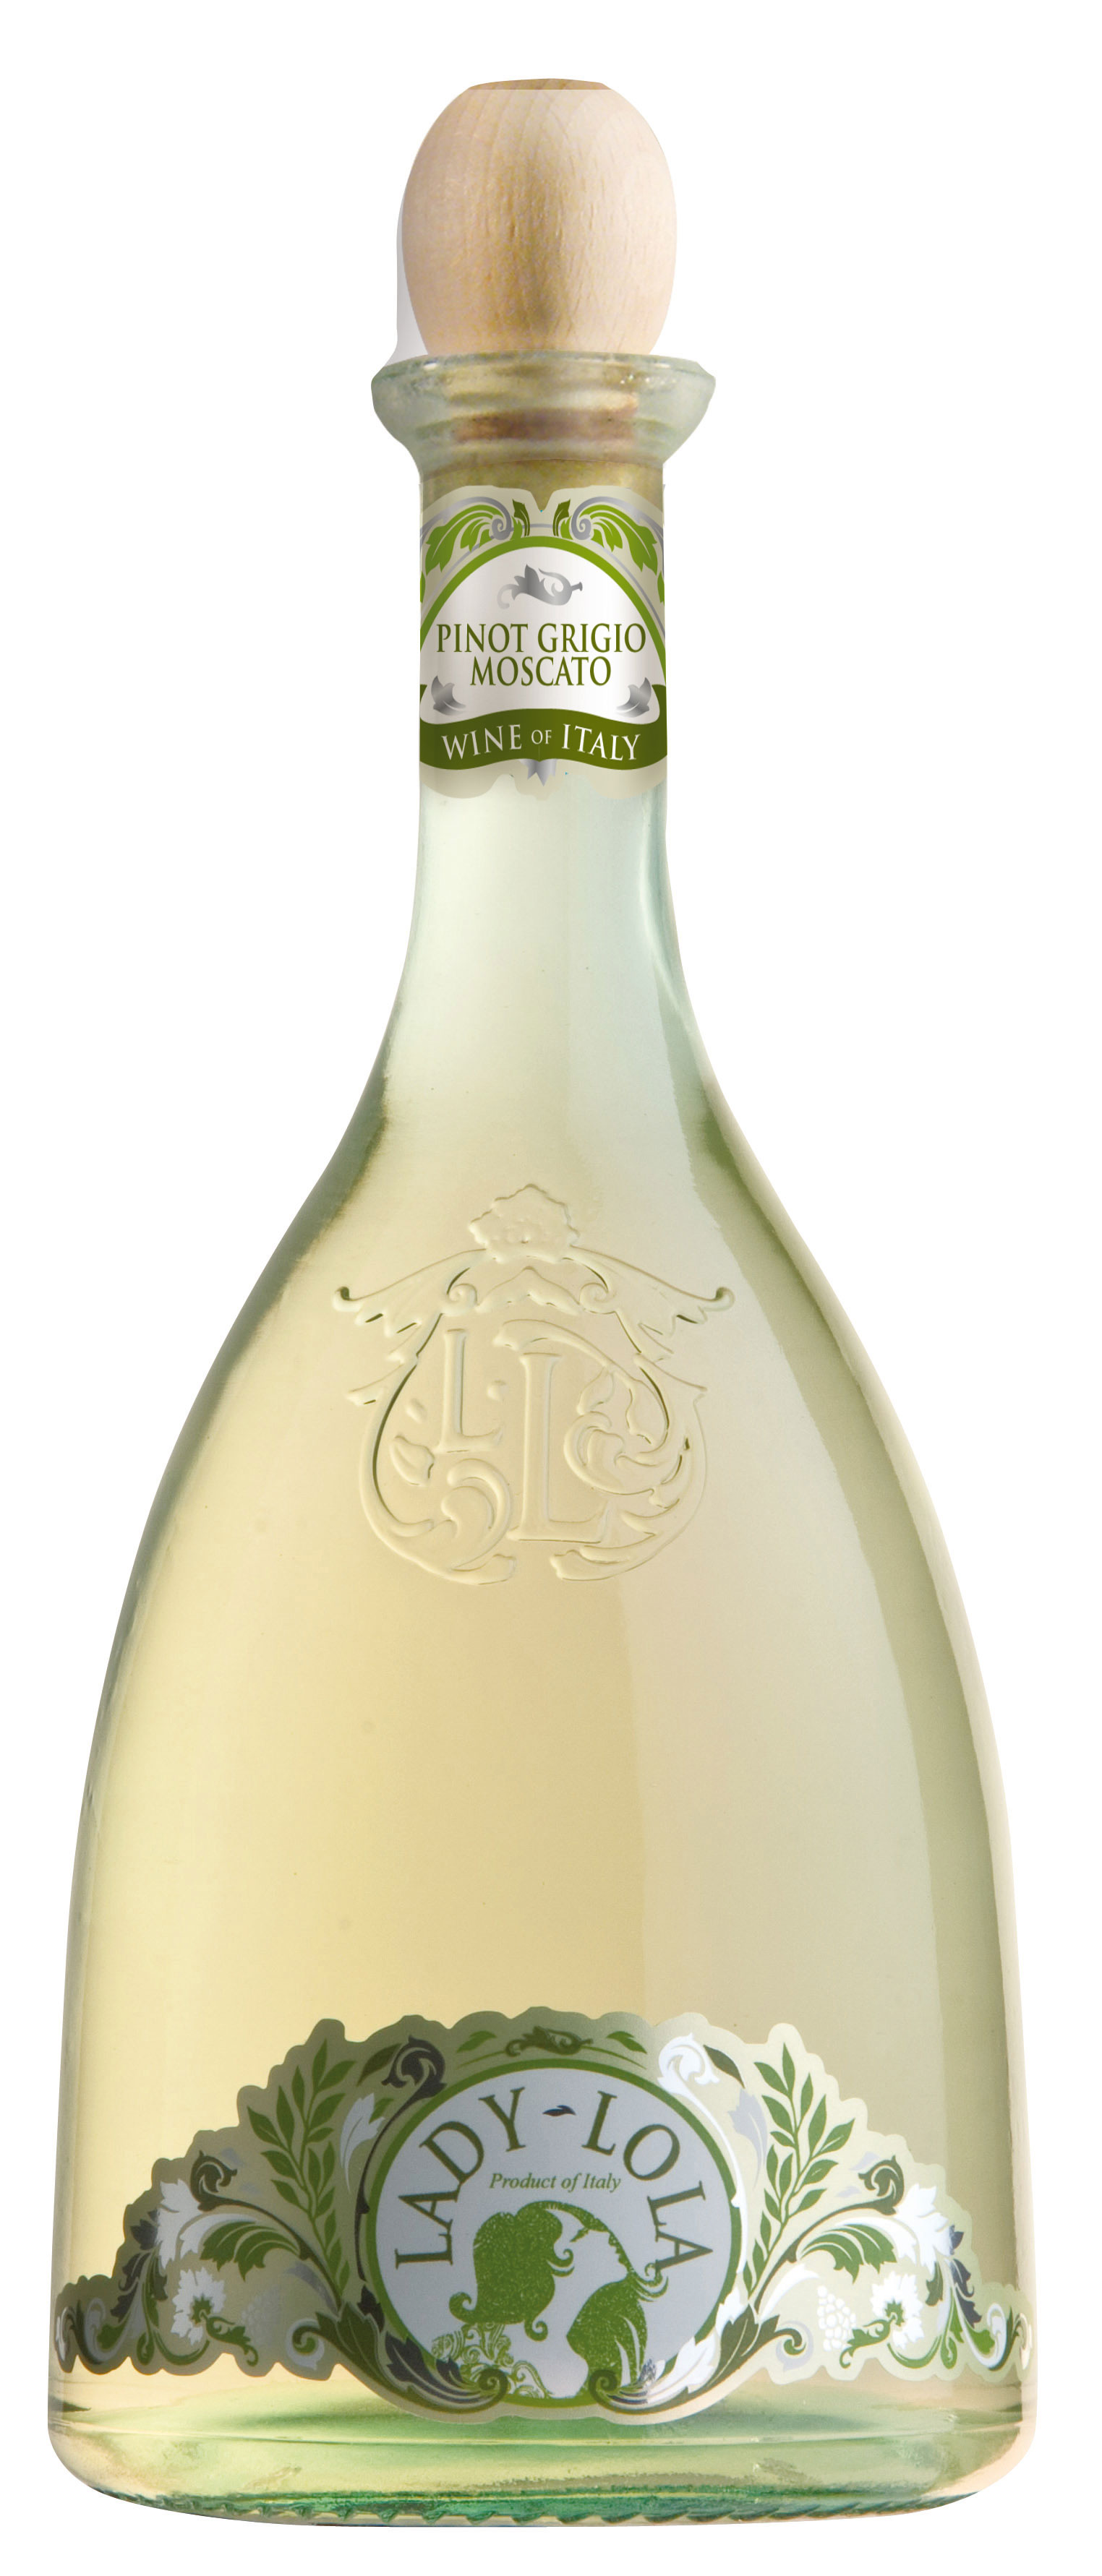 lady lola pinot grigio for only  12 59 in online liquor store